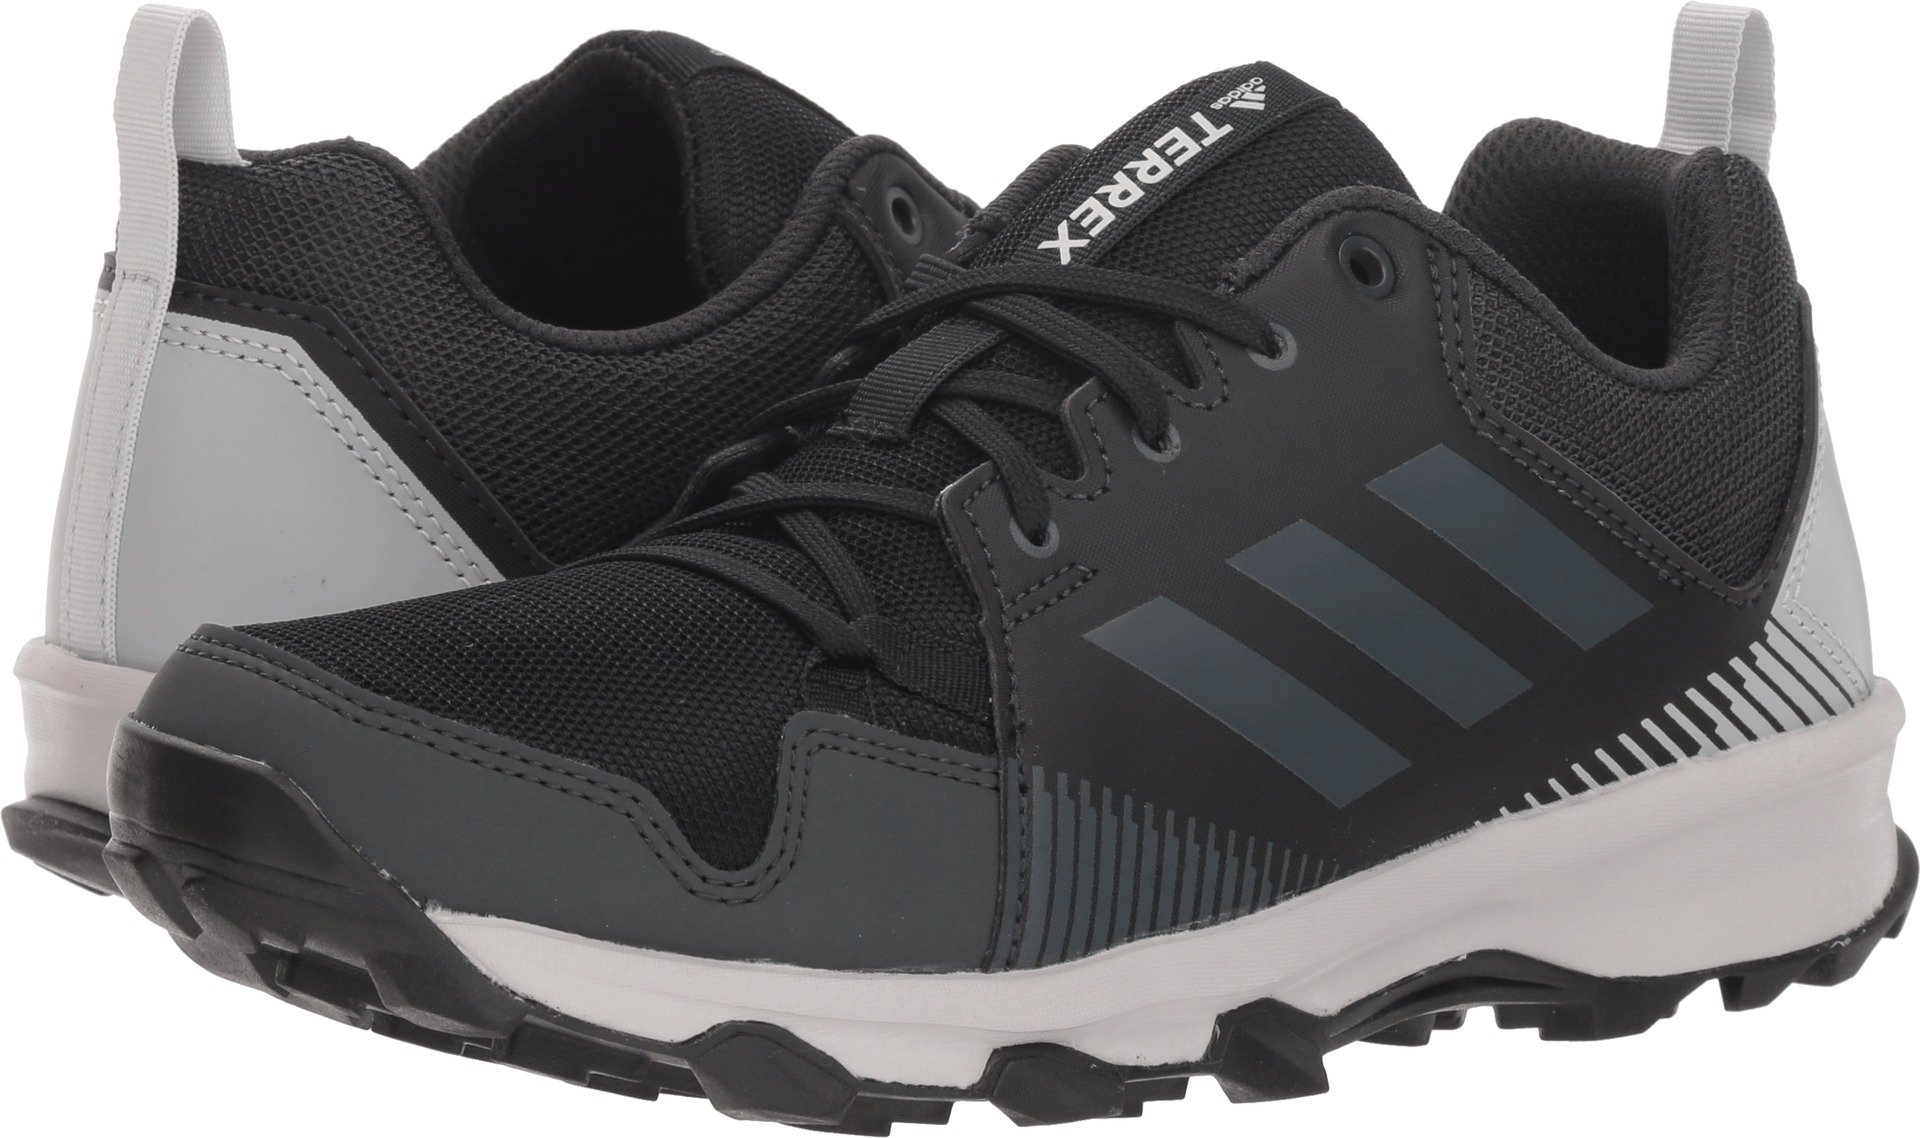 adidas outdoor Women's Terrex Tracerocker W, Black/Carbon/Grey Two, 5.5 B US by adidas outdoor (Image #1)